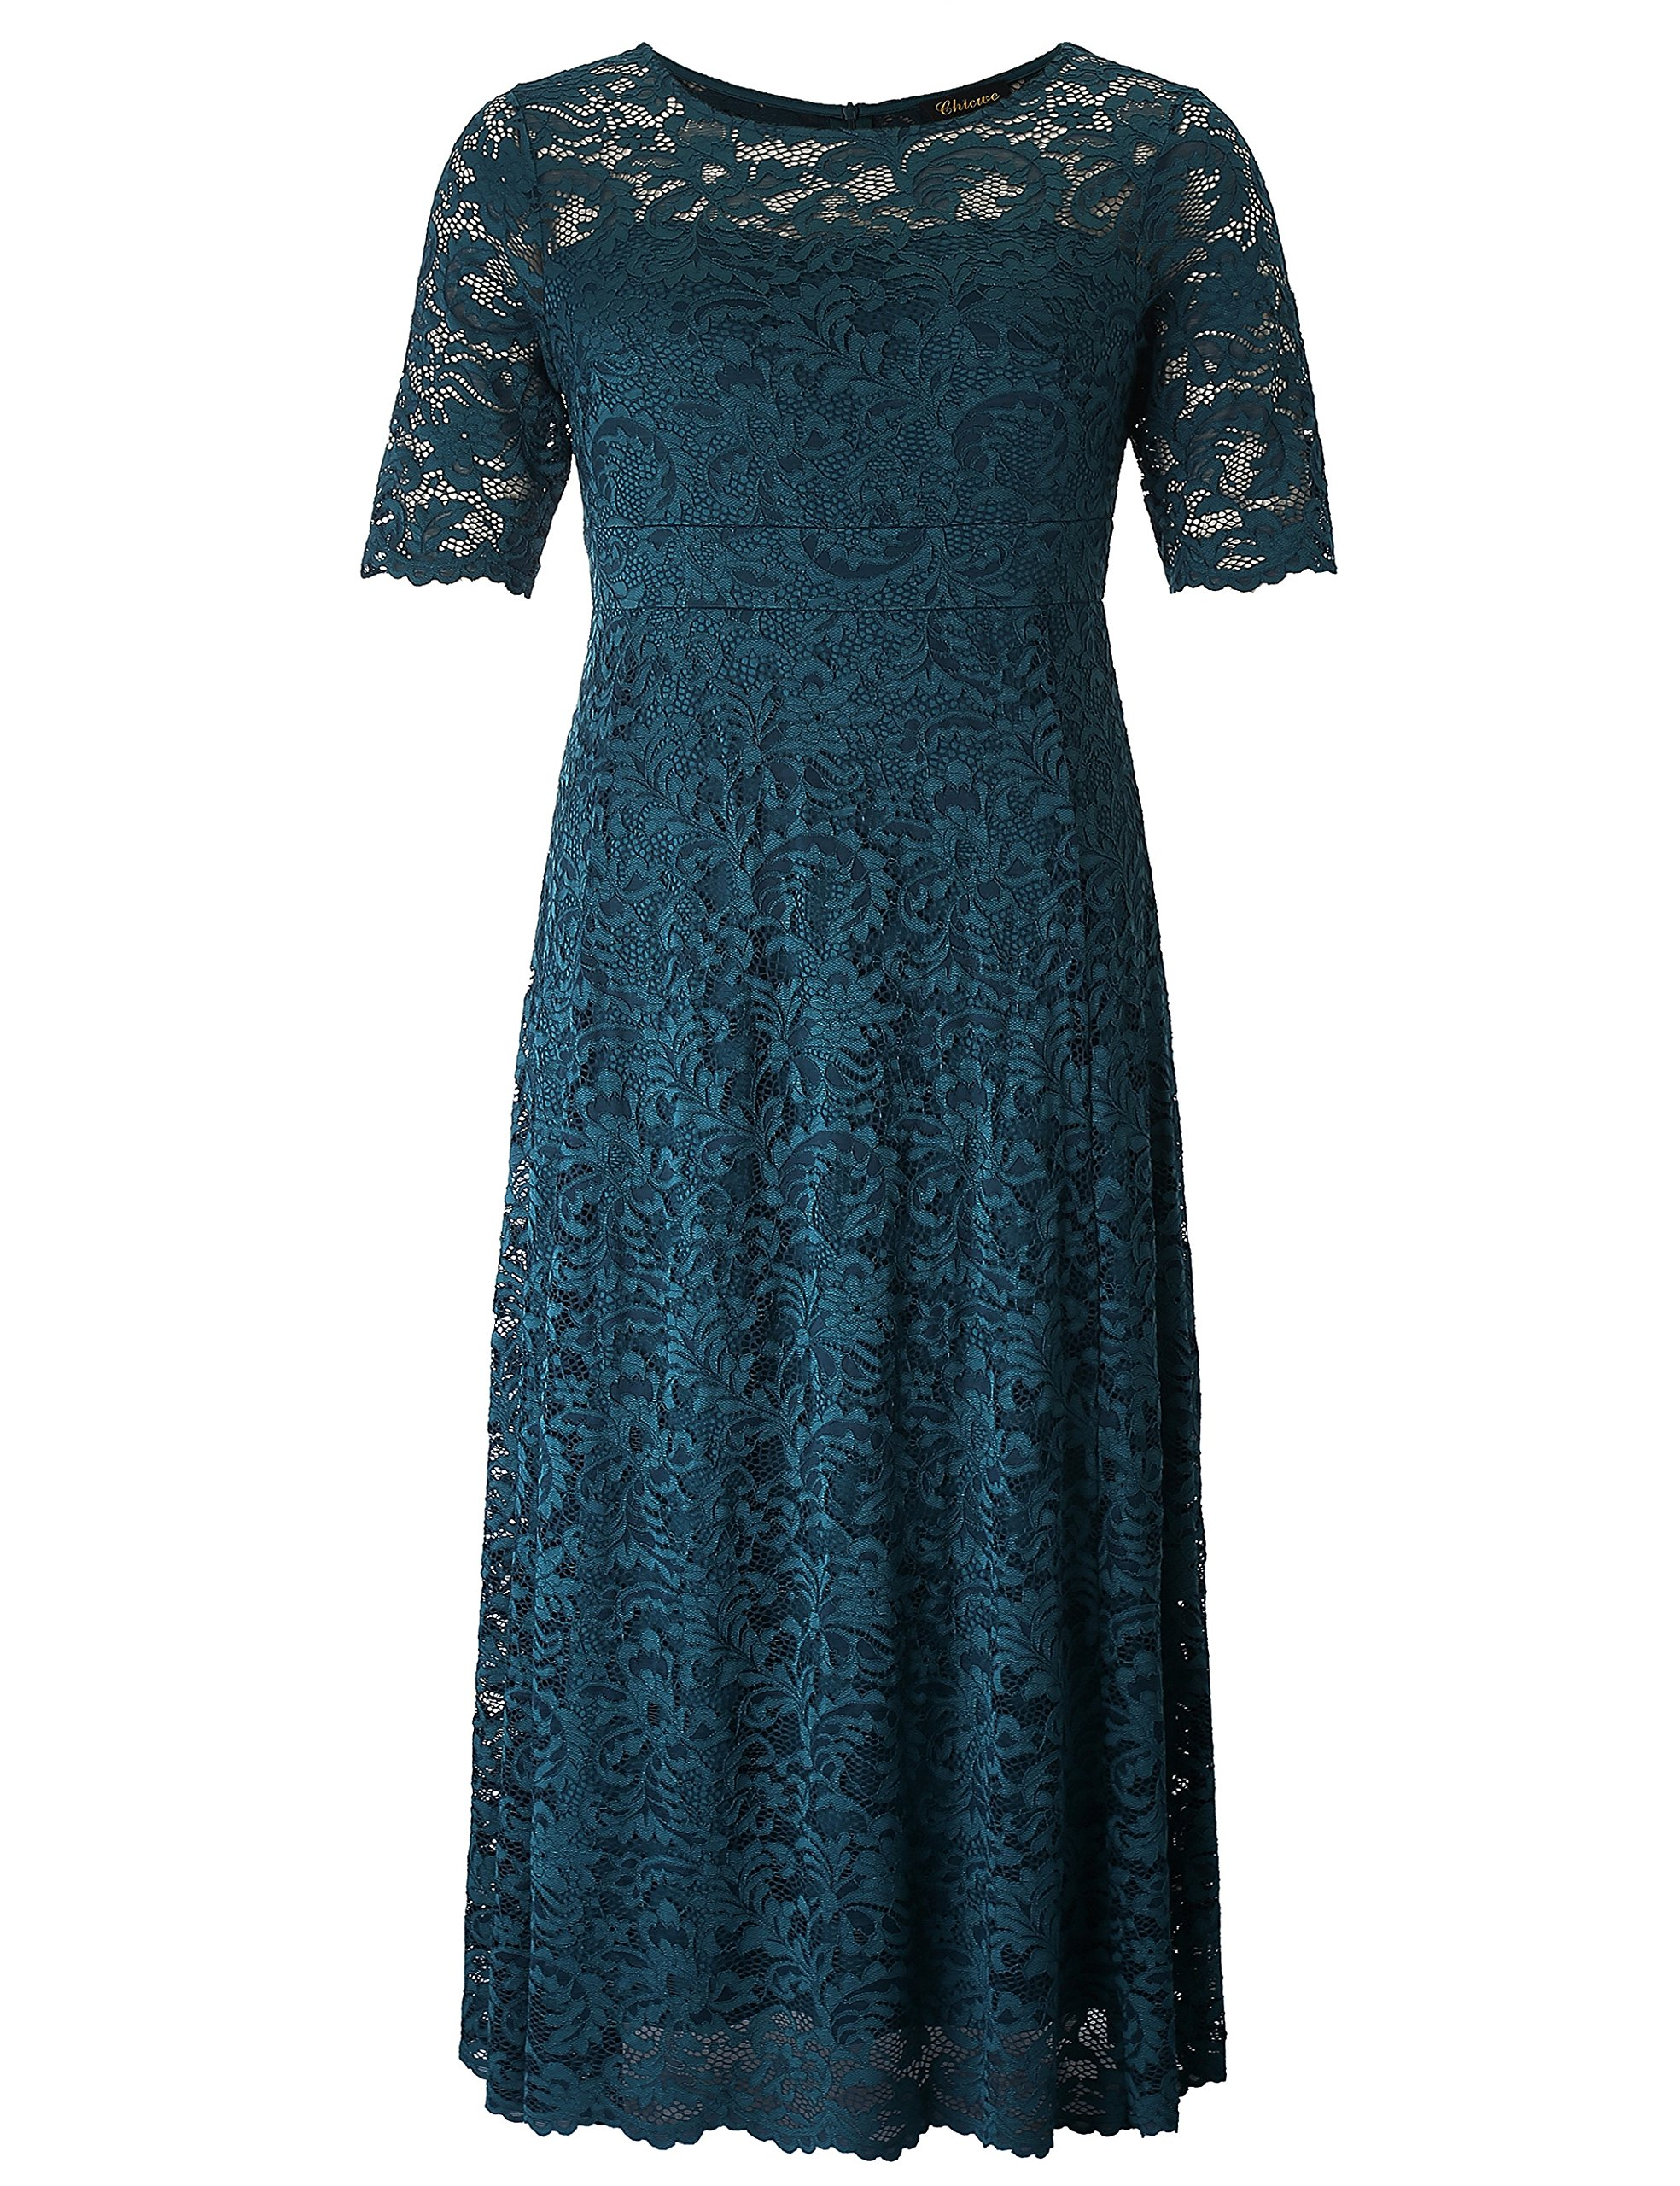 Chicwe Women's Plus Size Stretch Lined Scalloped Lace Maxi Dress - Evening Wedding Party Cocktail Dress 3X